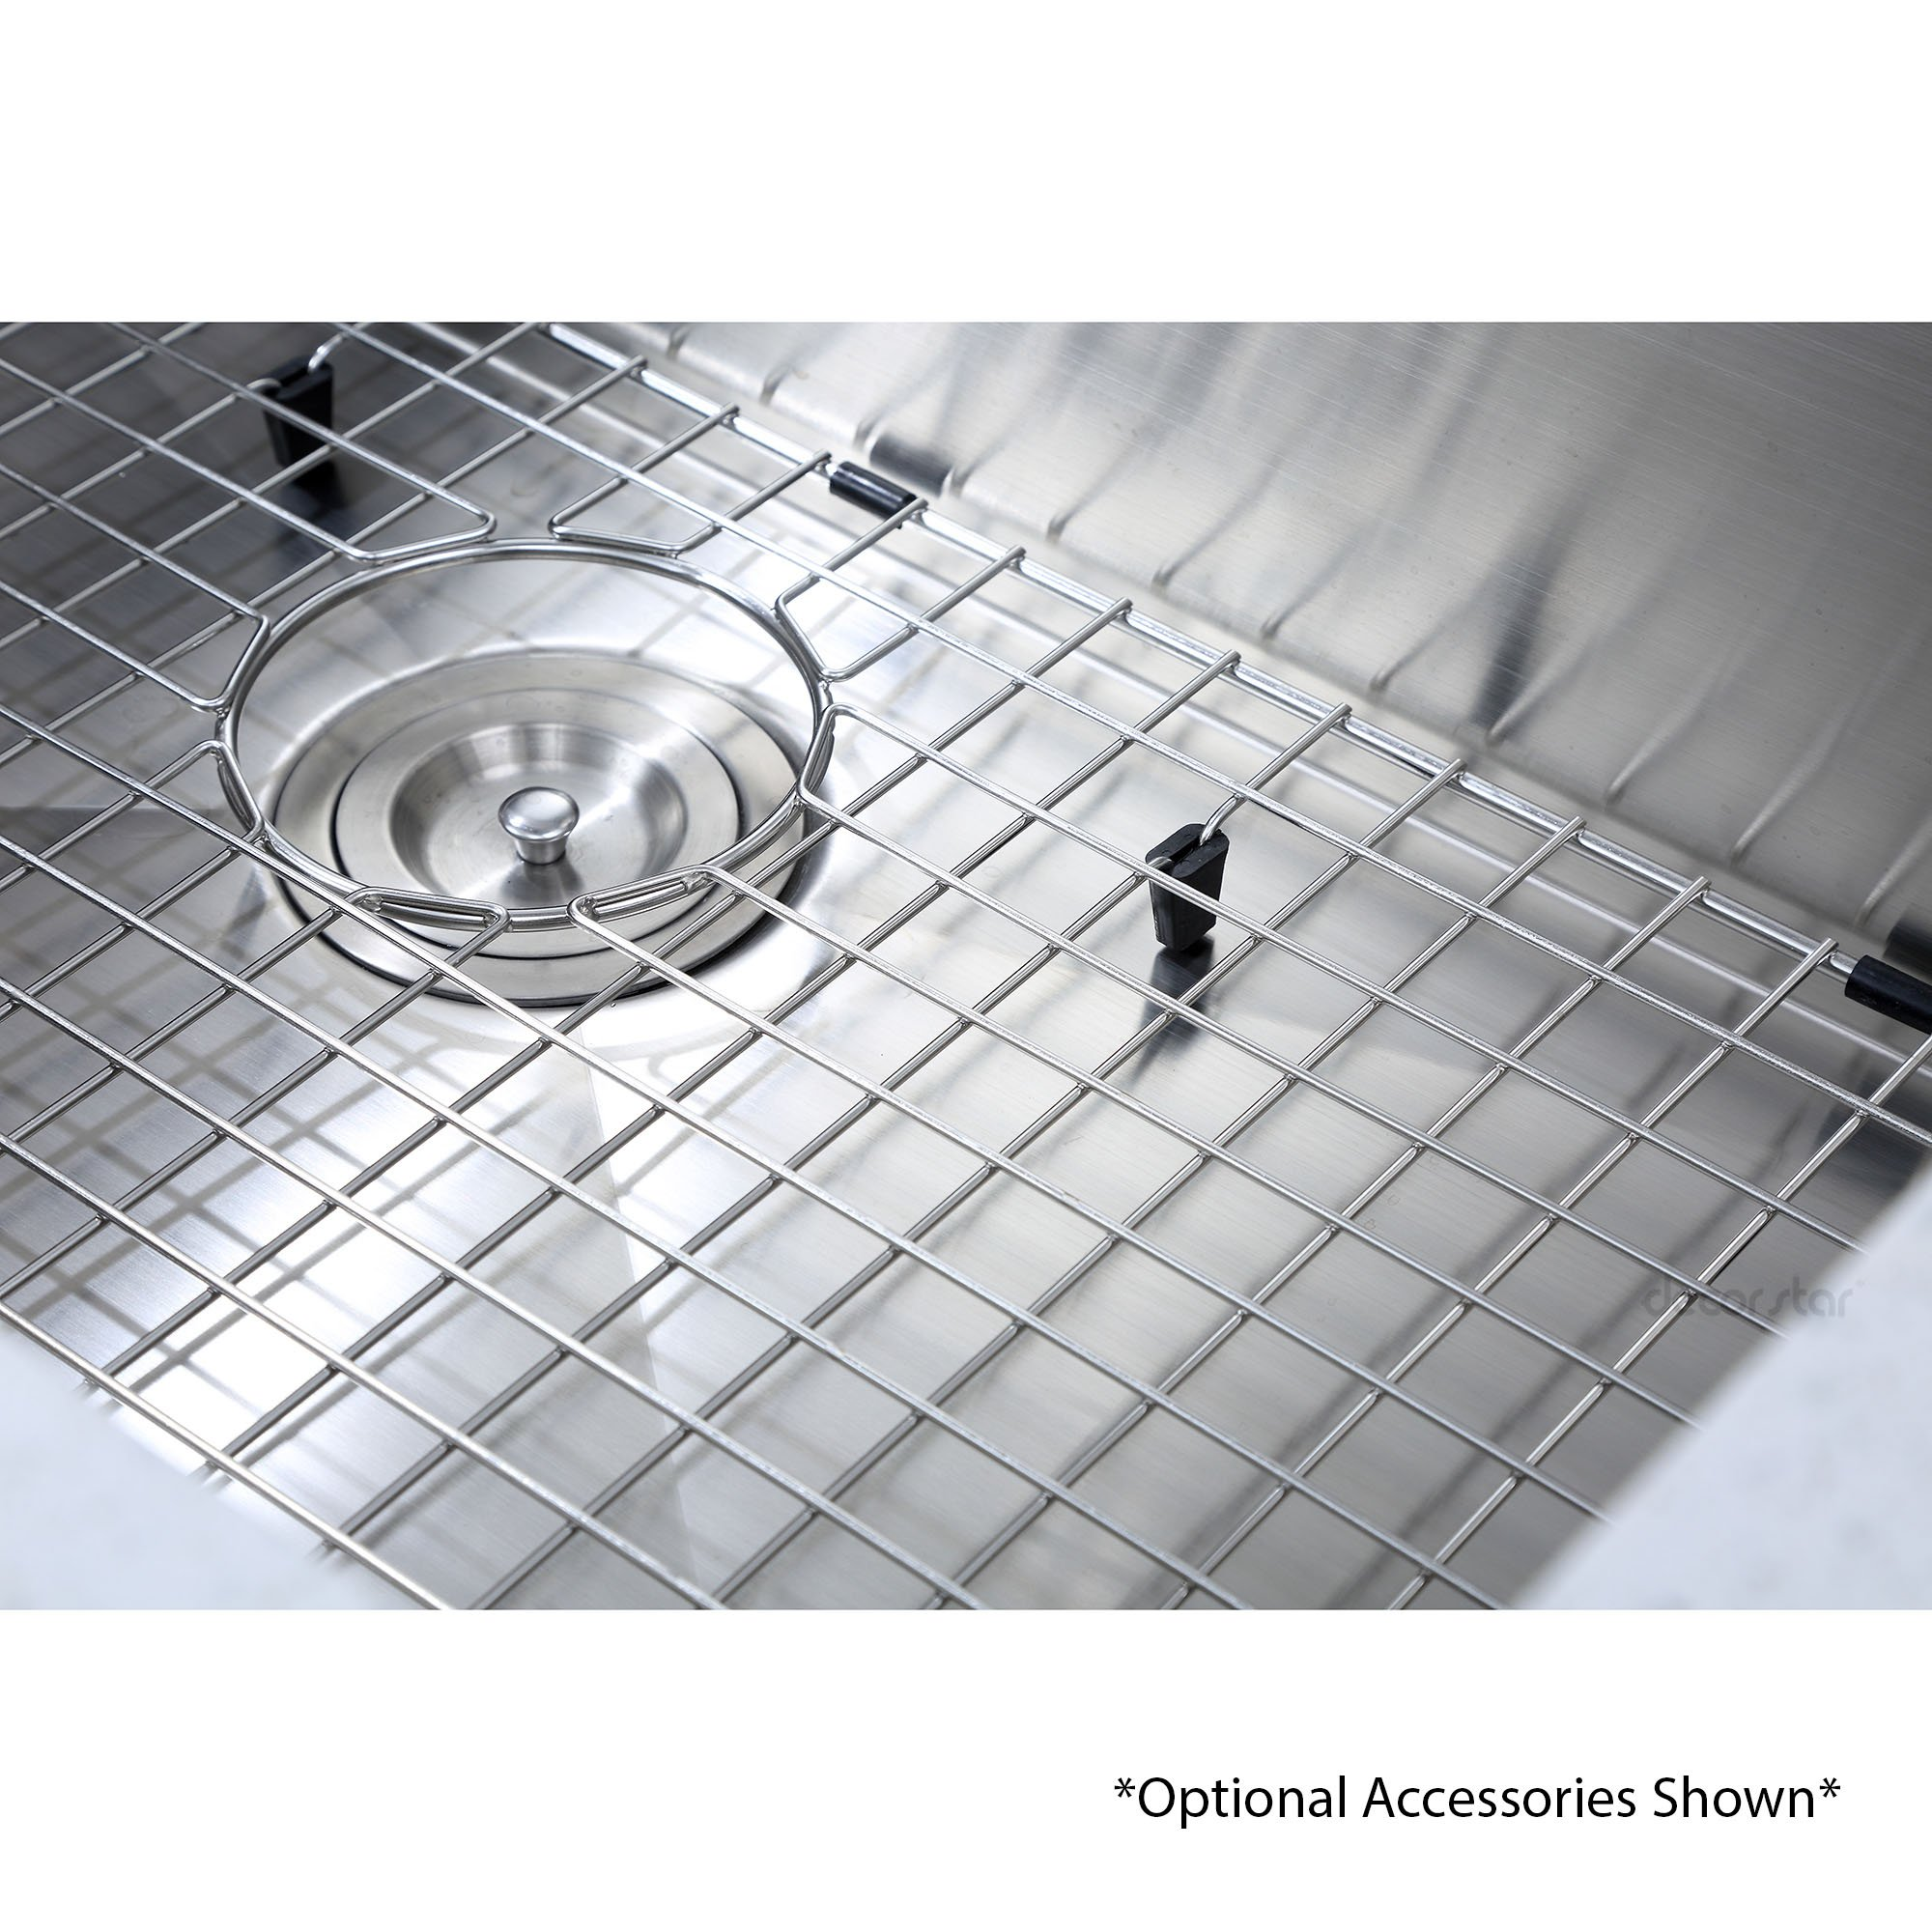 Decor Star H-001-Z 32 Inch x 19 Inch Undermount Single Bowl 16 Gauge Stainless Steel Luxury Handmade Kitchen Sink cUPC Zero Radius by Decor Star (Image #5)